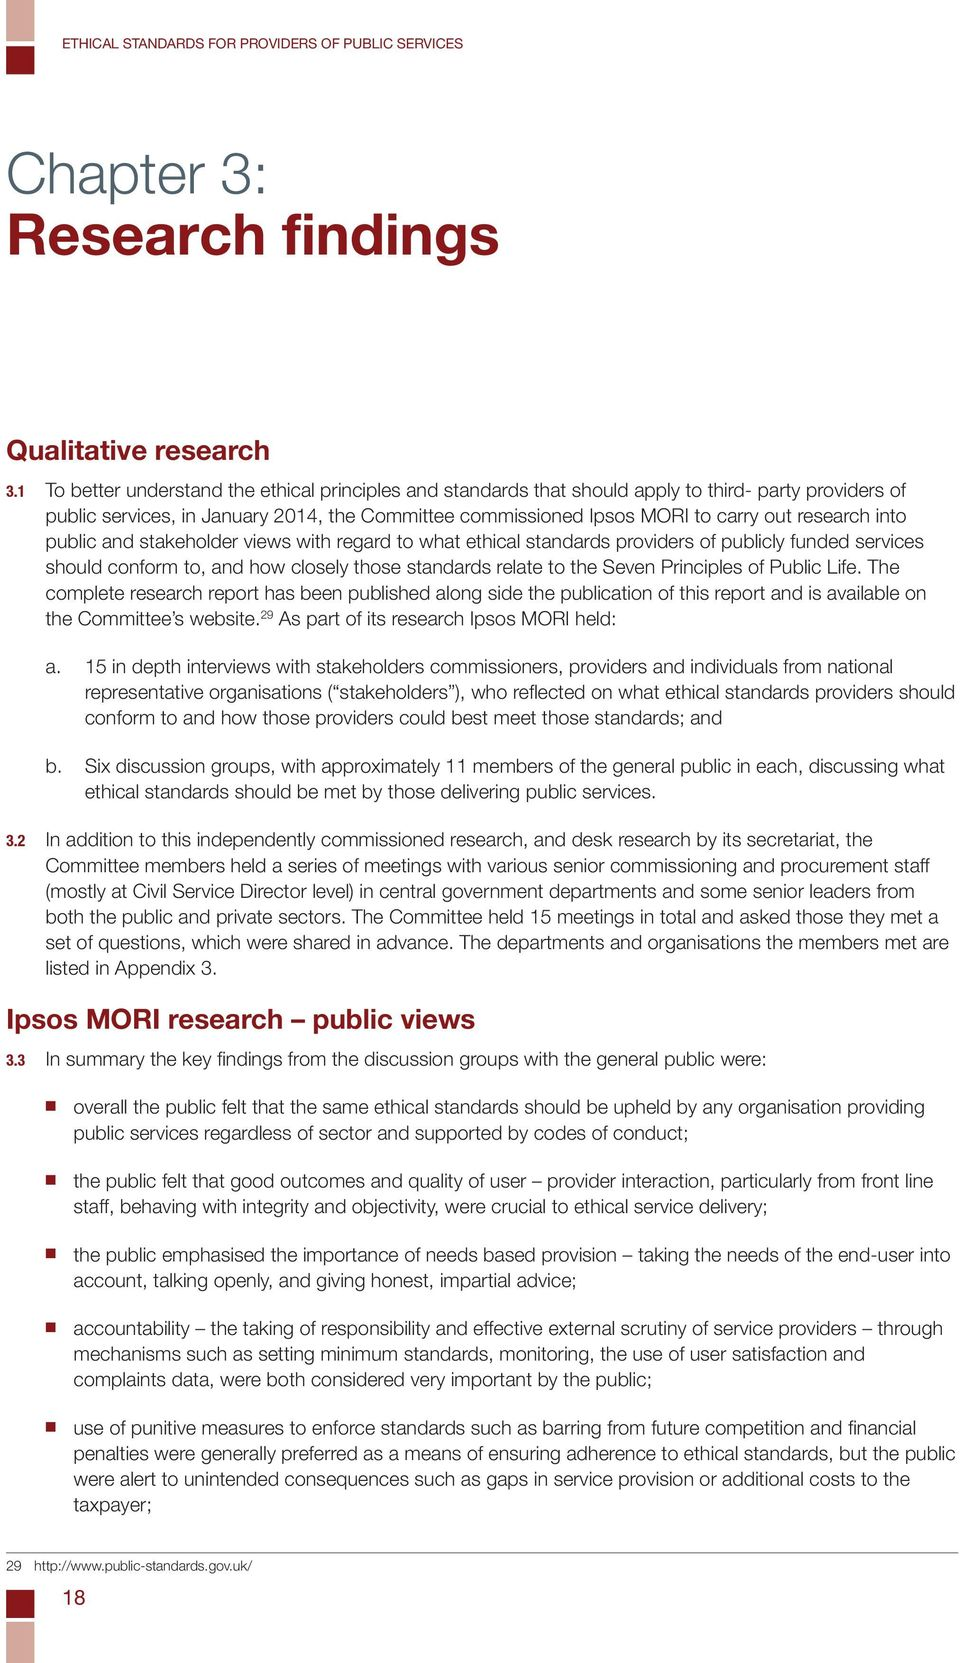 research into public and stakeholder views with regard to what ethical standards providers of publicly funded services should conform to, and how closely those standards relate to the Seven